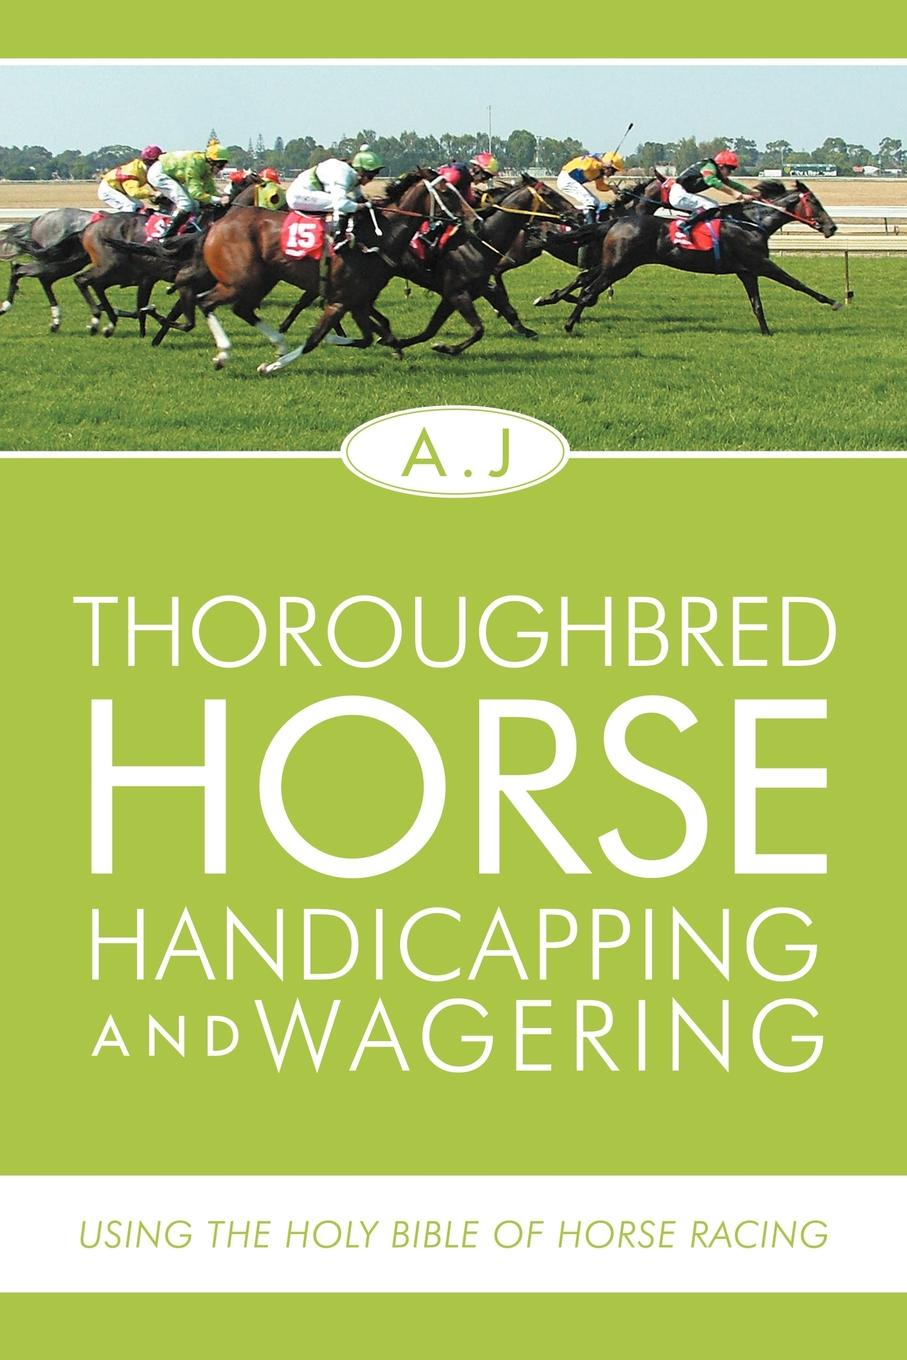 A.J Thoroughbred Horse Handicapping and Wagering. Using the Holy Bible of Horse Racing the holy bible